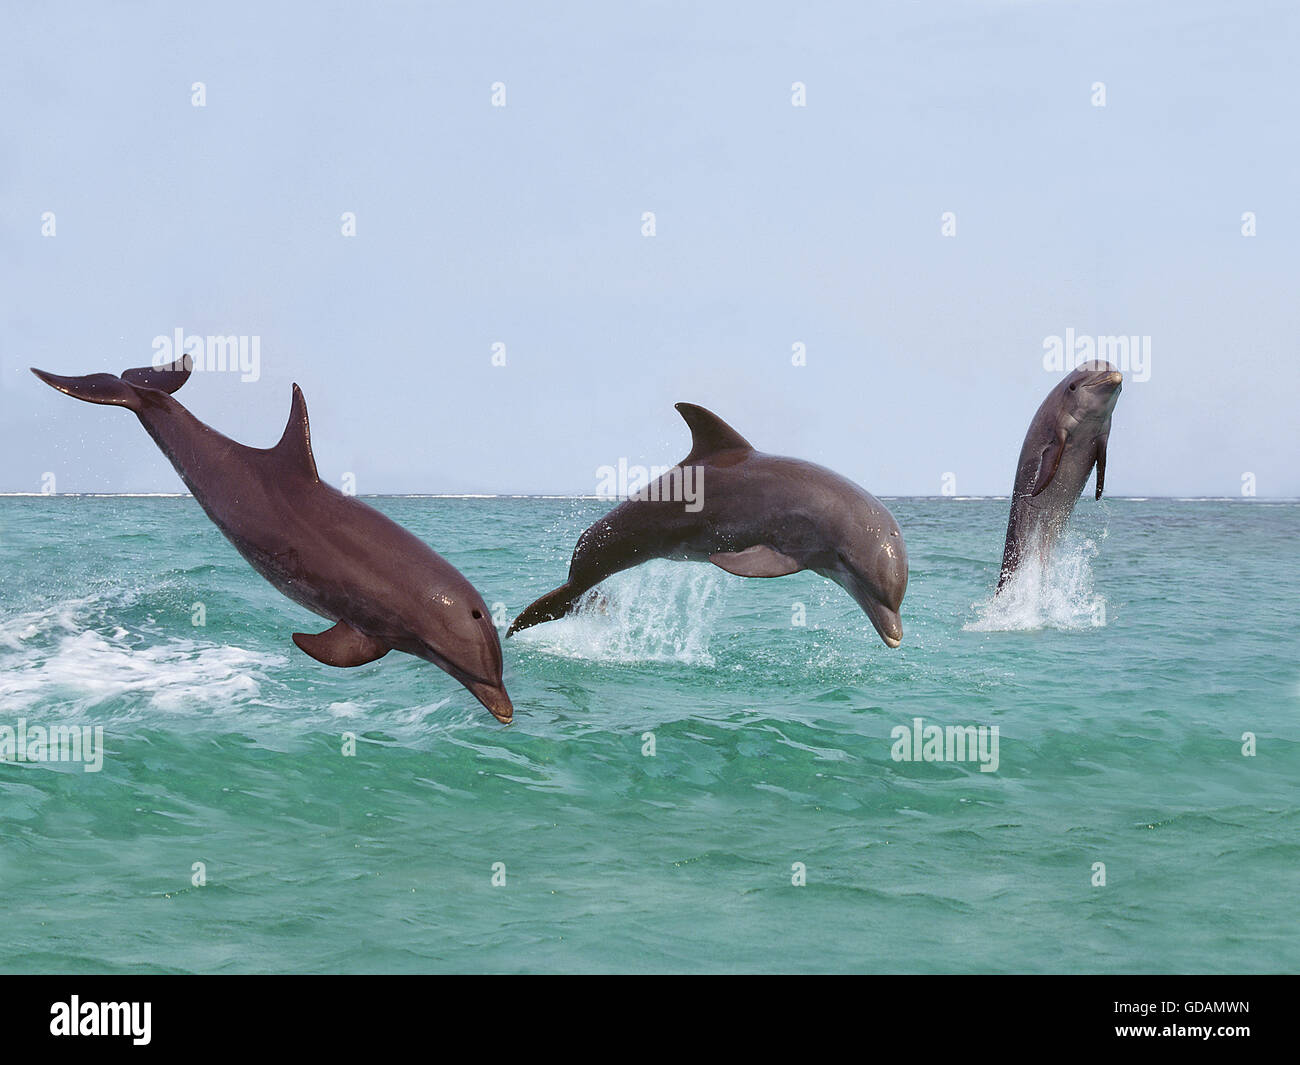 BOTTLENOSE DOLPHIN tursiops truncatus, GROUP LEAPING OUT OF THE WATER, HONDURAS Stock Photo